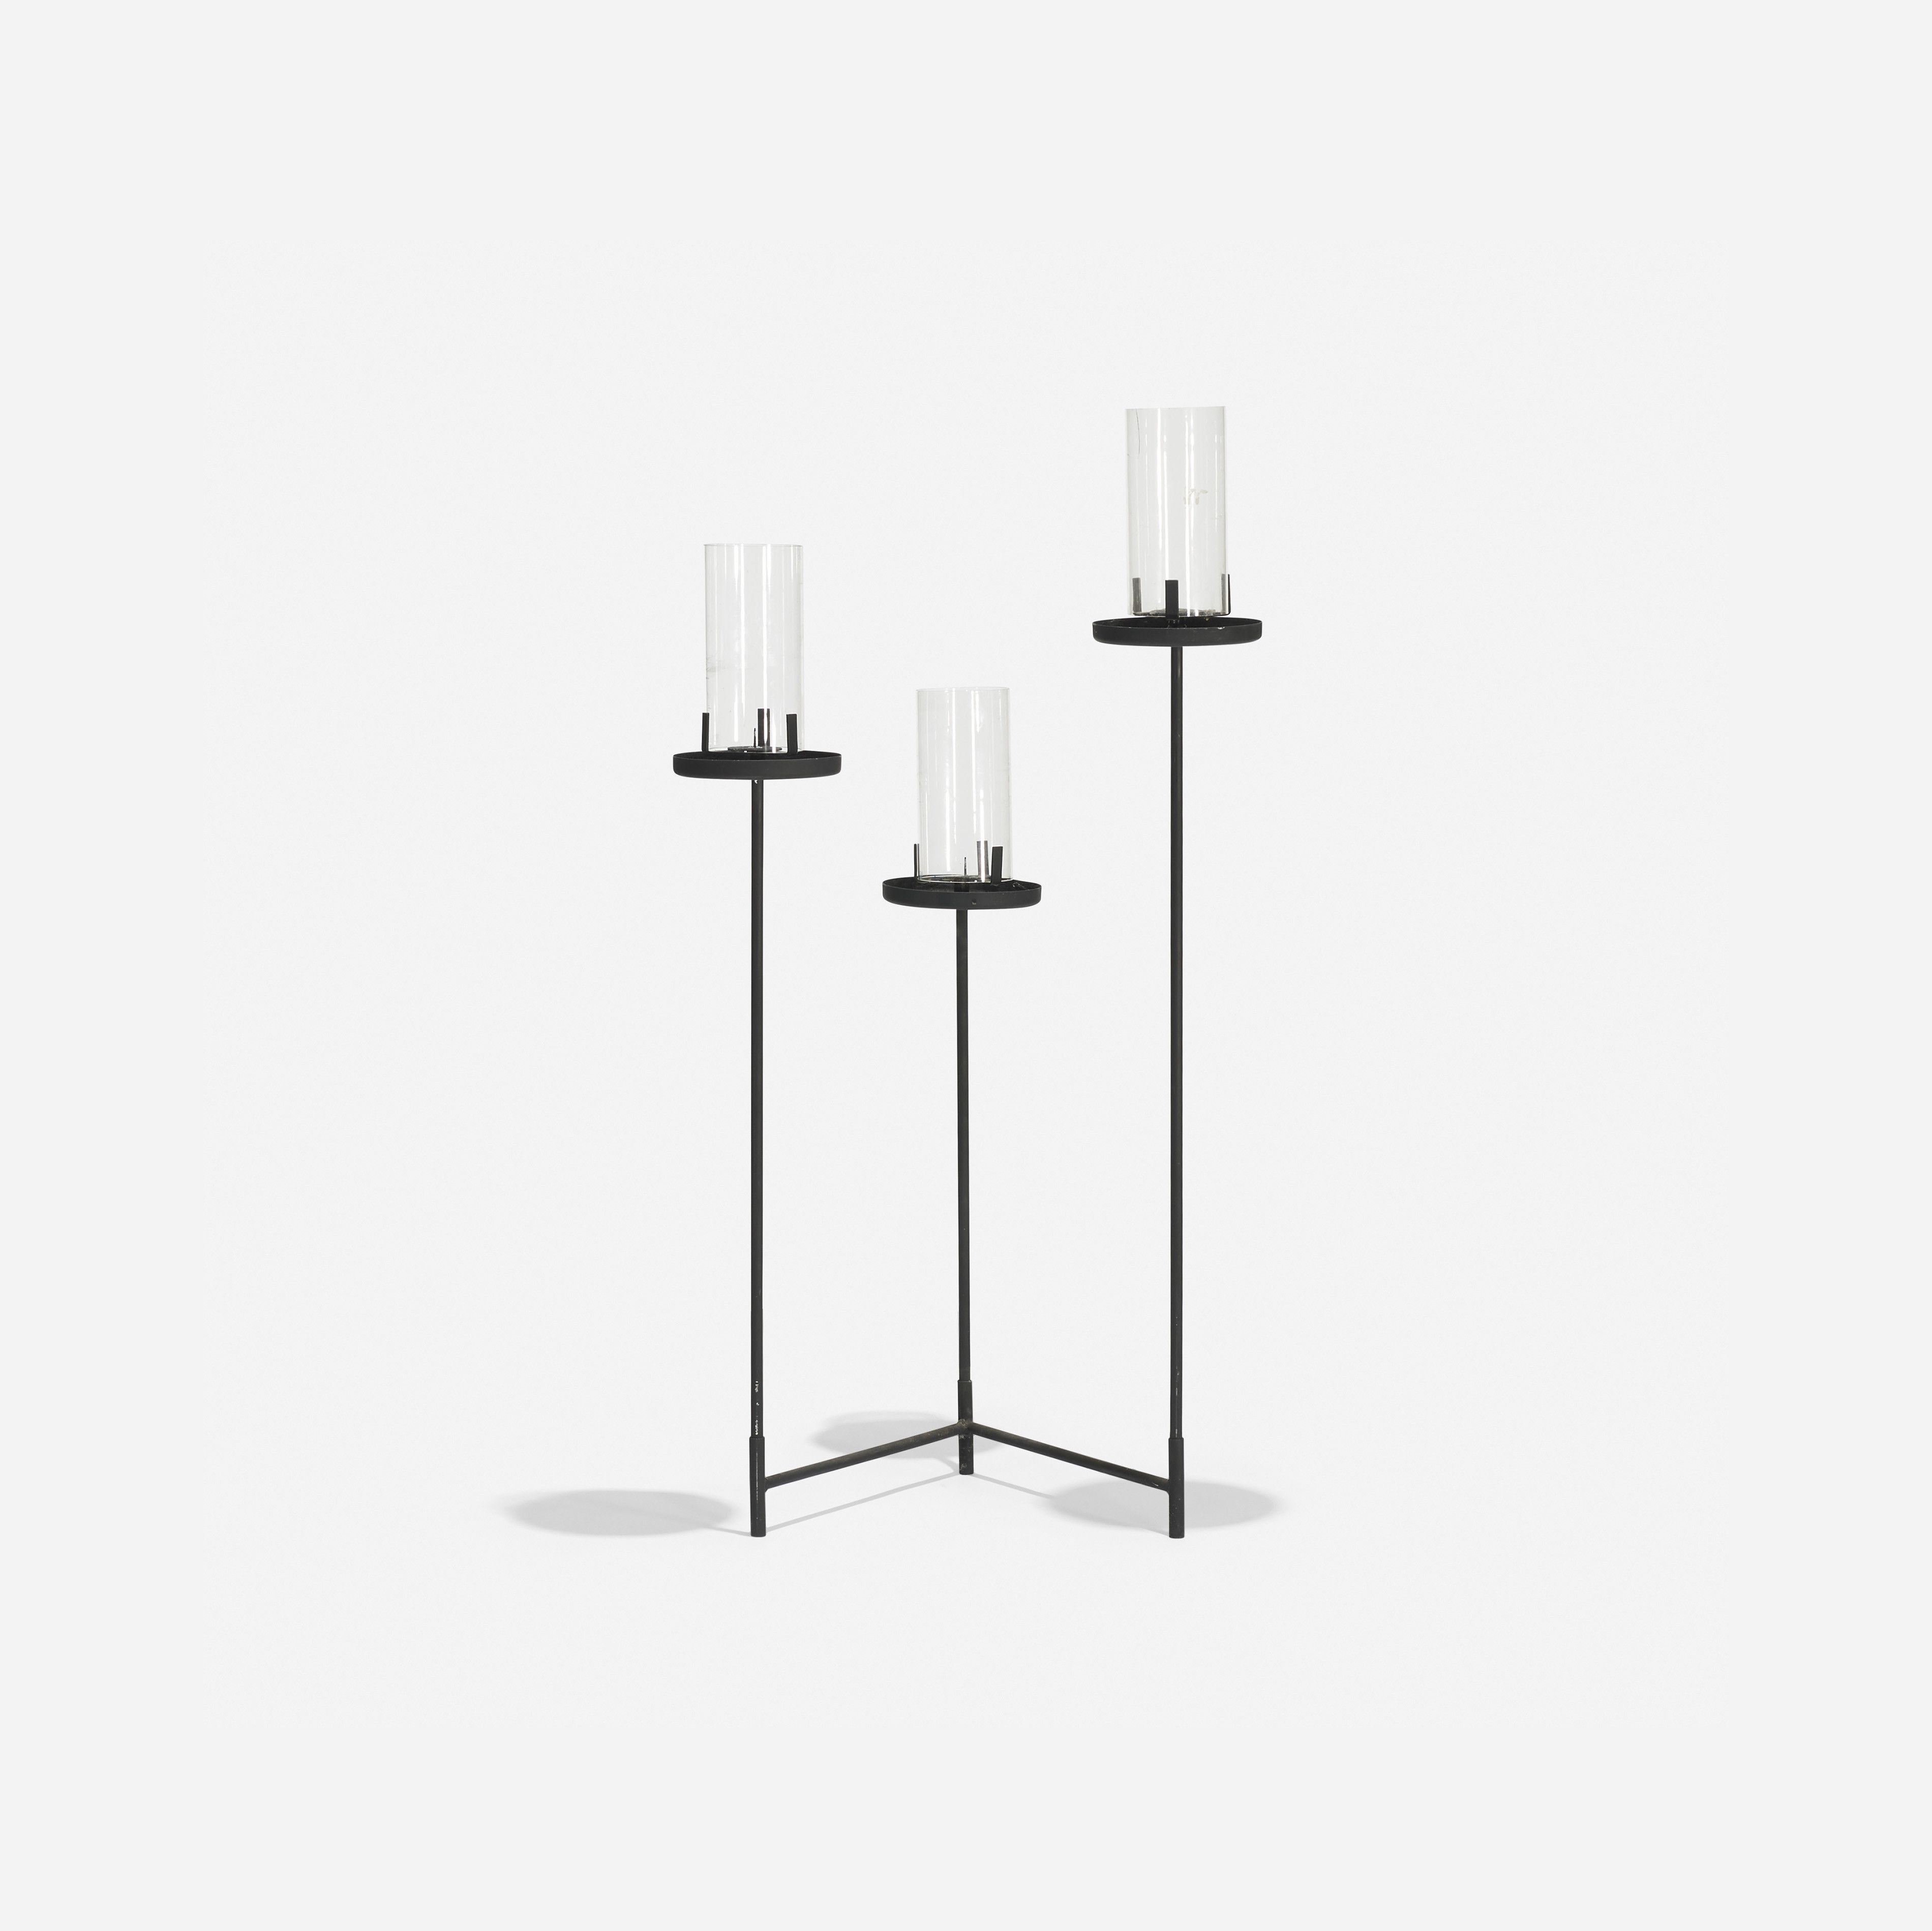 Candelabra by hendrick van keppel and taylor green candle holders